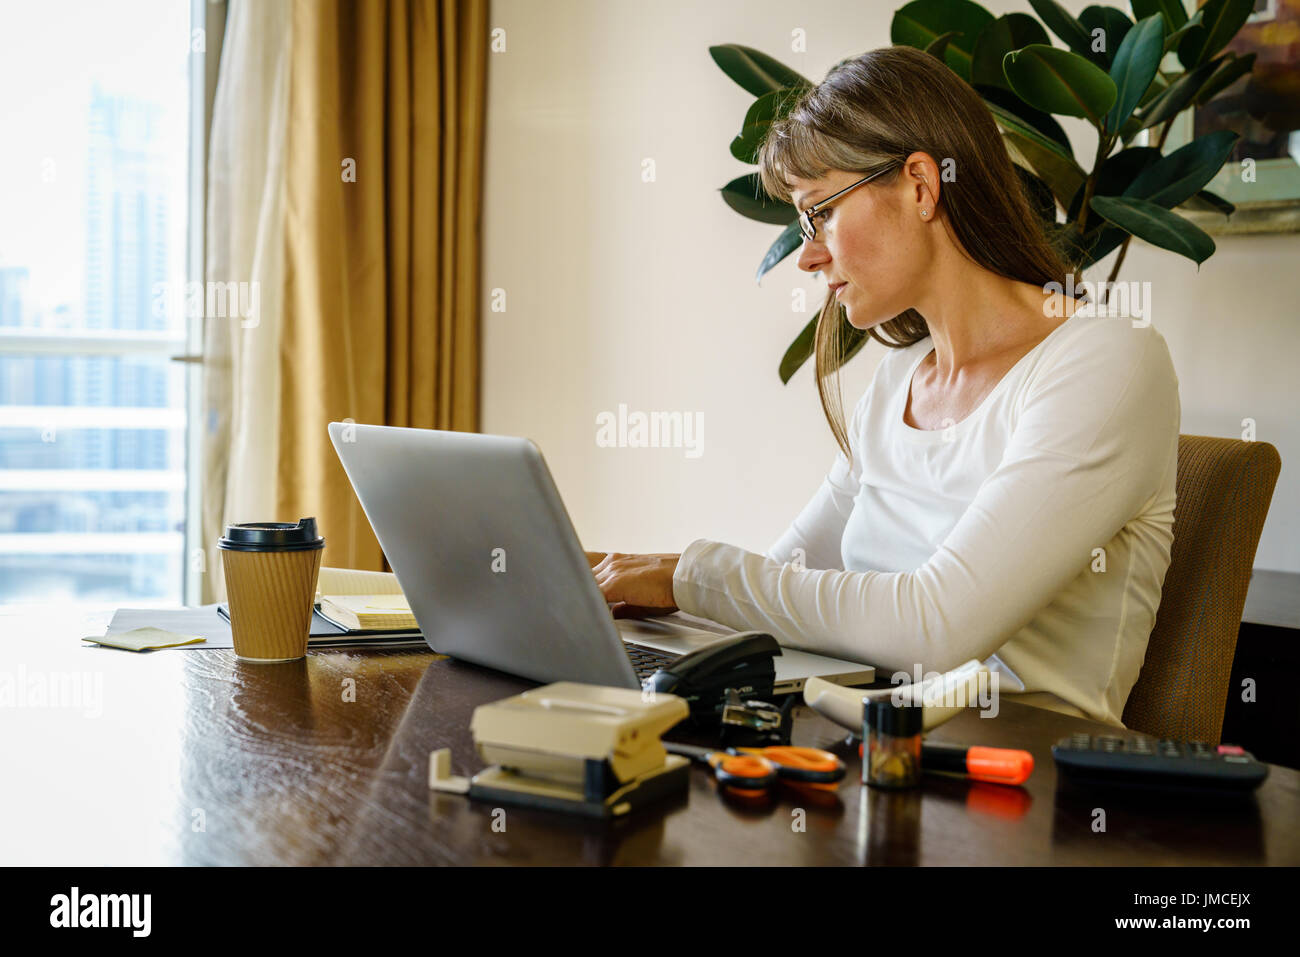 Woman is working in her home office - Stock Image